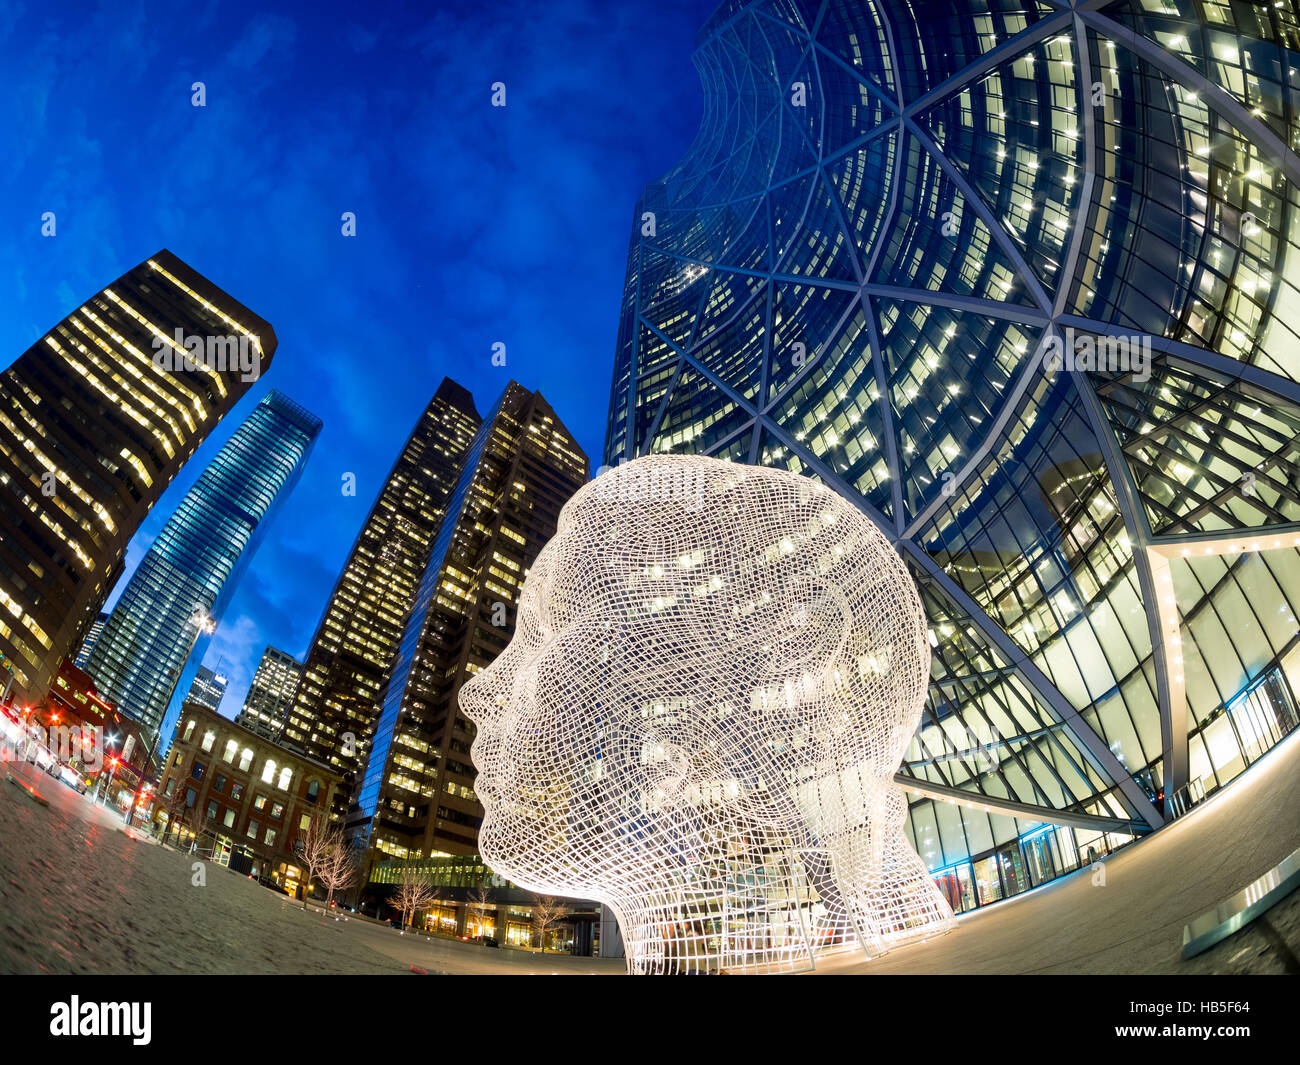 A night, fisheye view of the sculpture Wonderland by Jaume Plensa, in front of The Bow skyscraper in Calgary, Alberta, Stock Photo